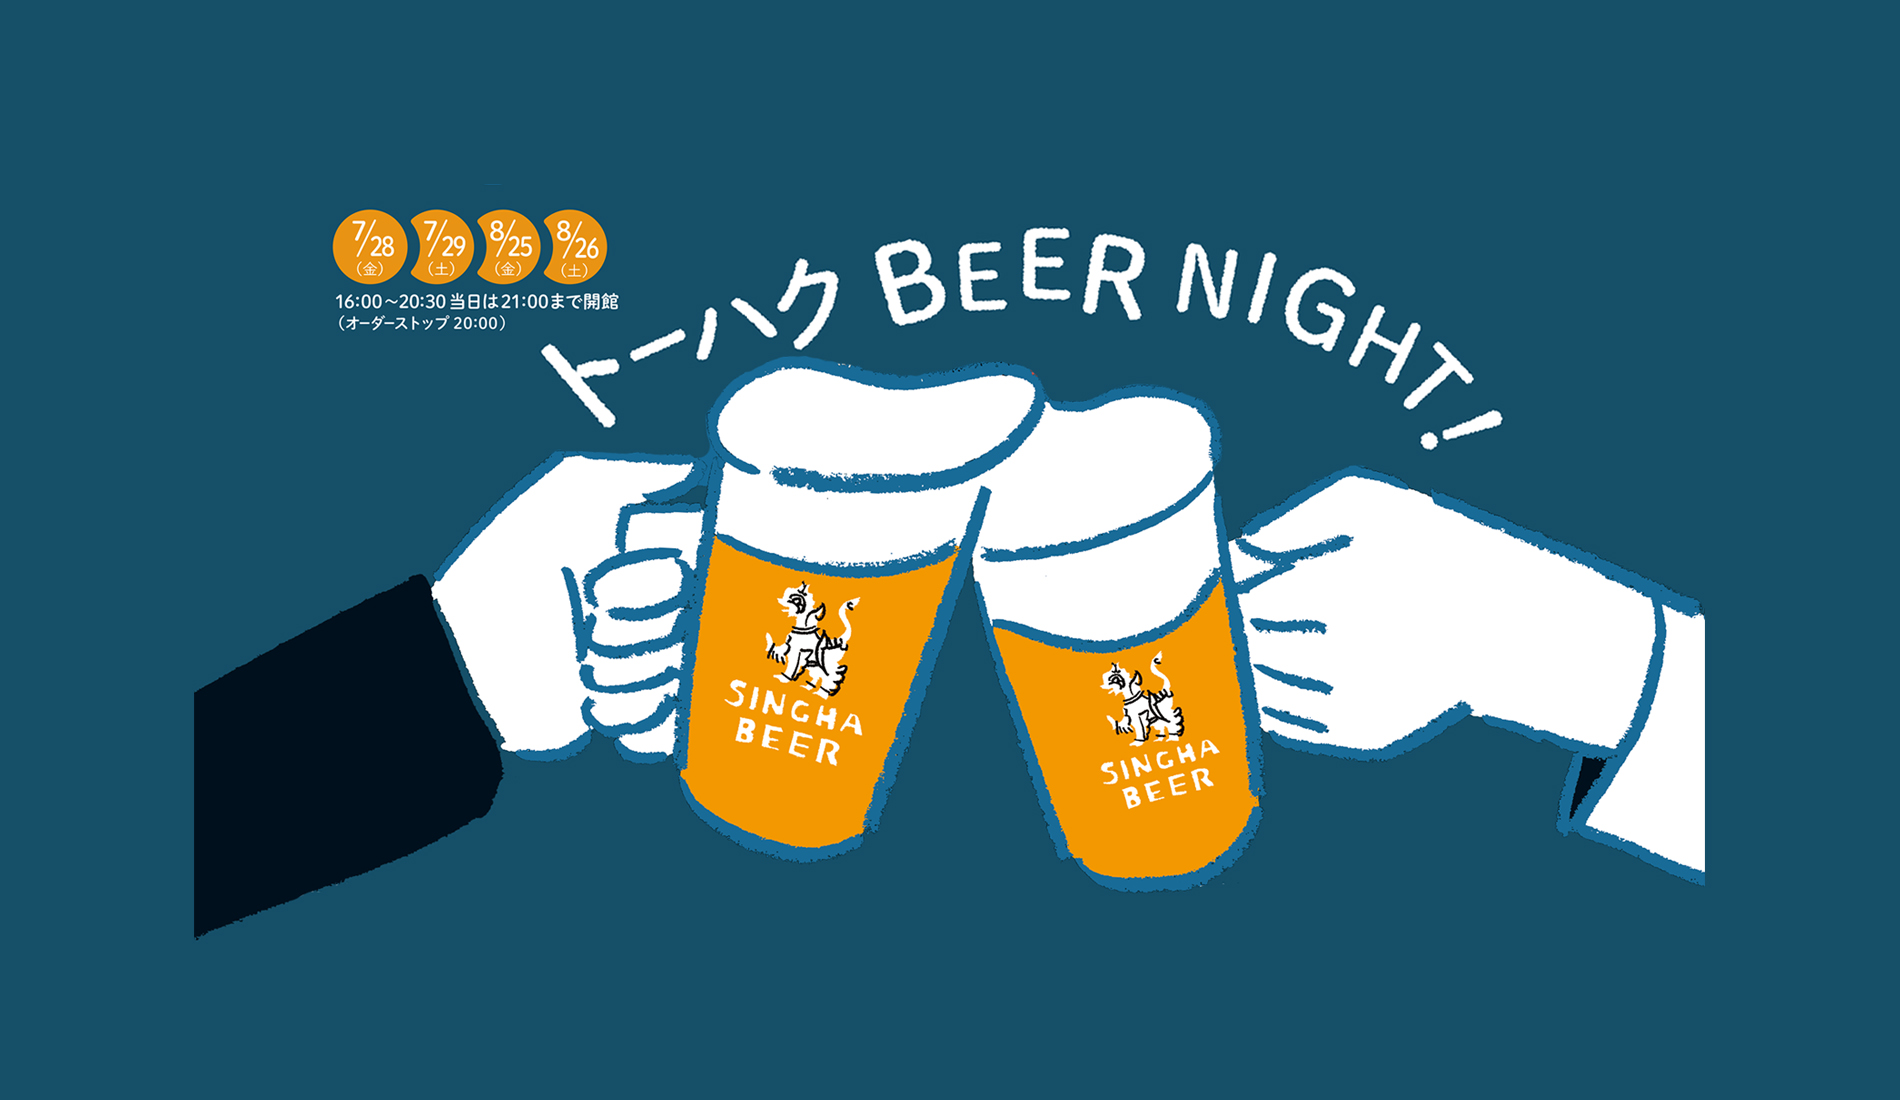 トーハク BEER NIGHT!